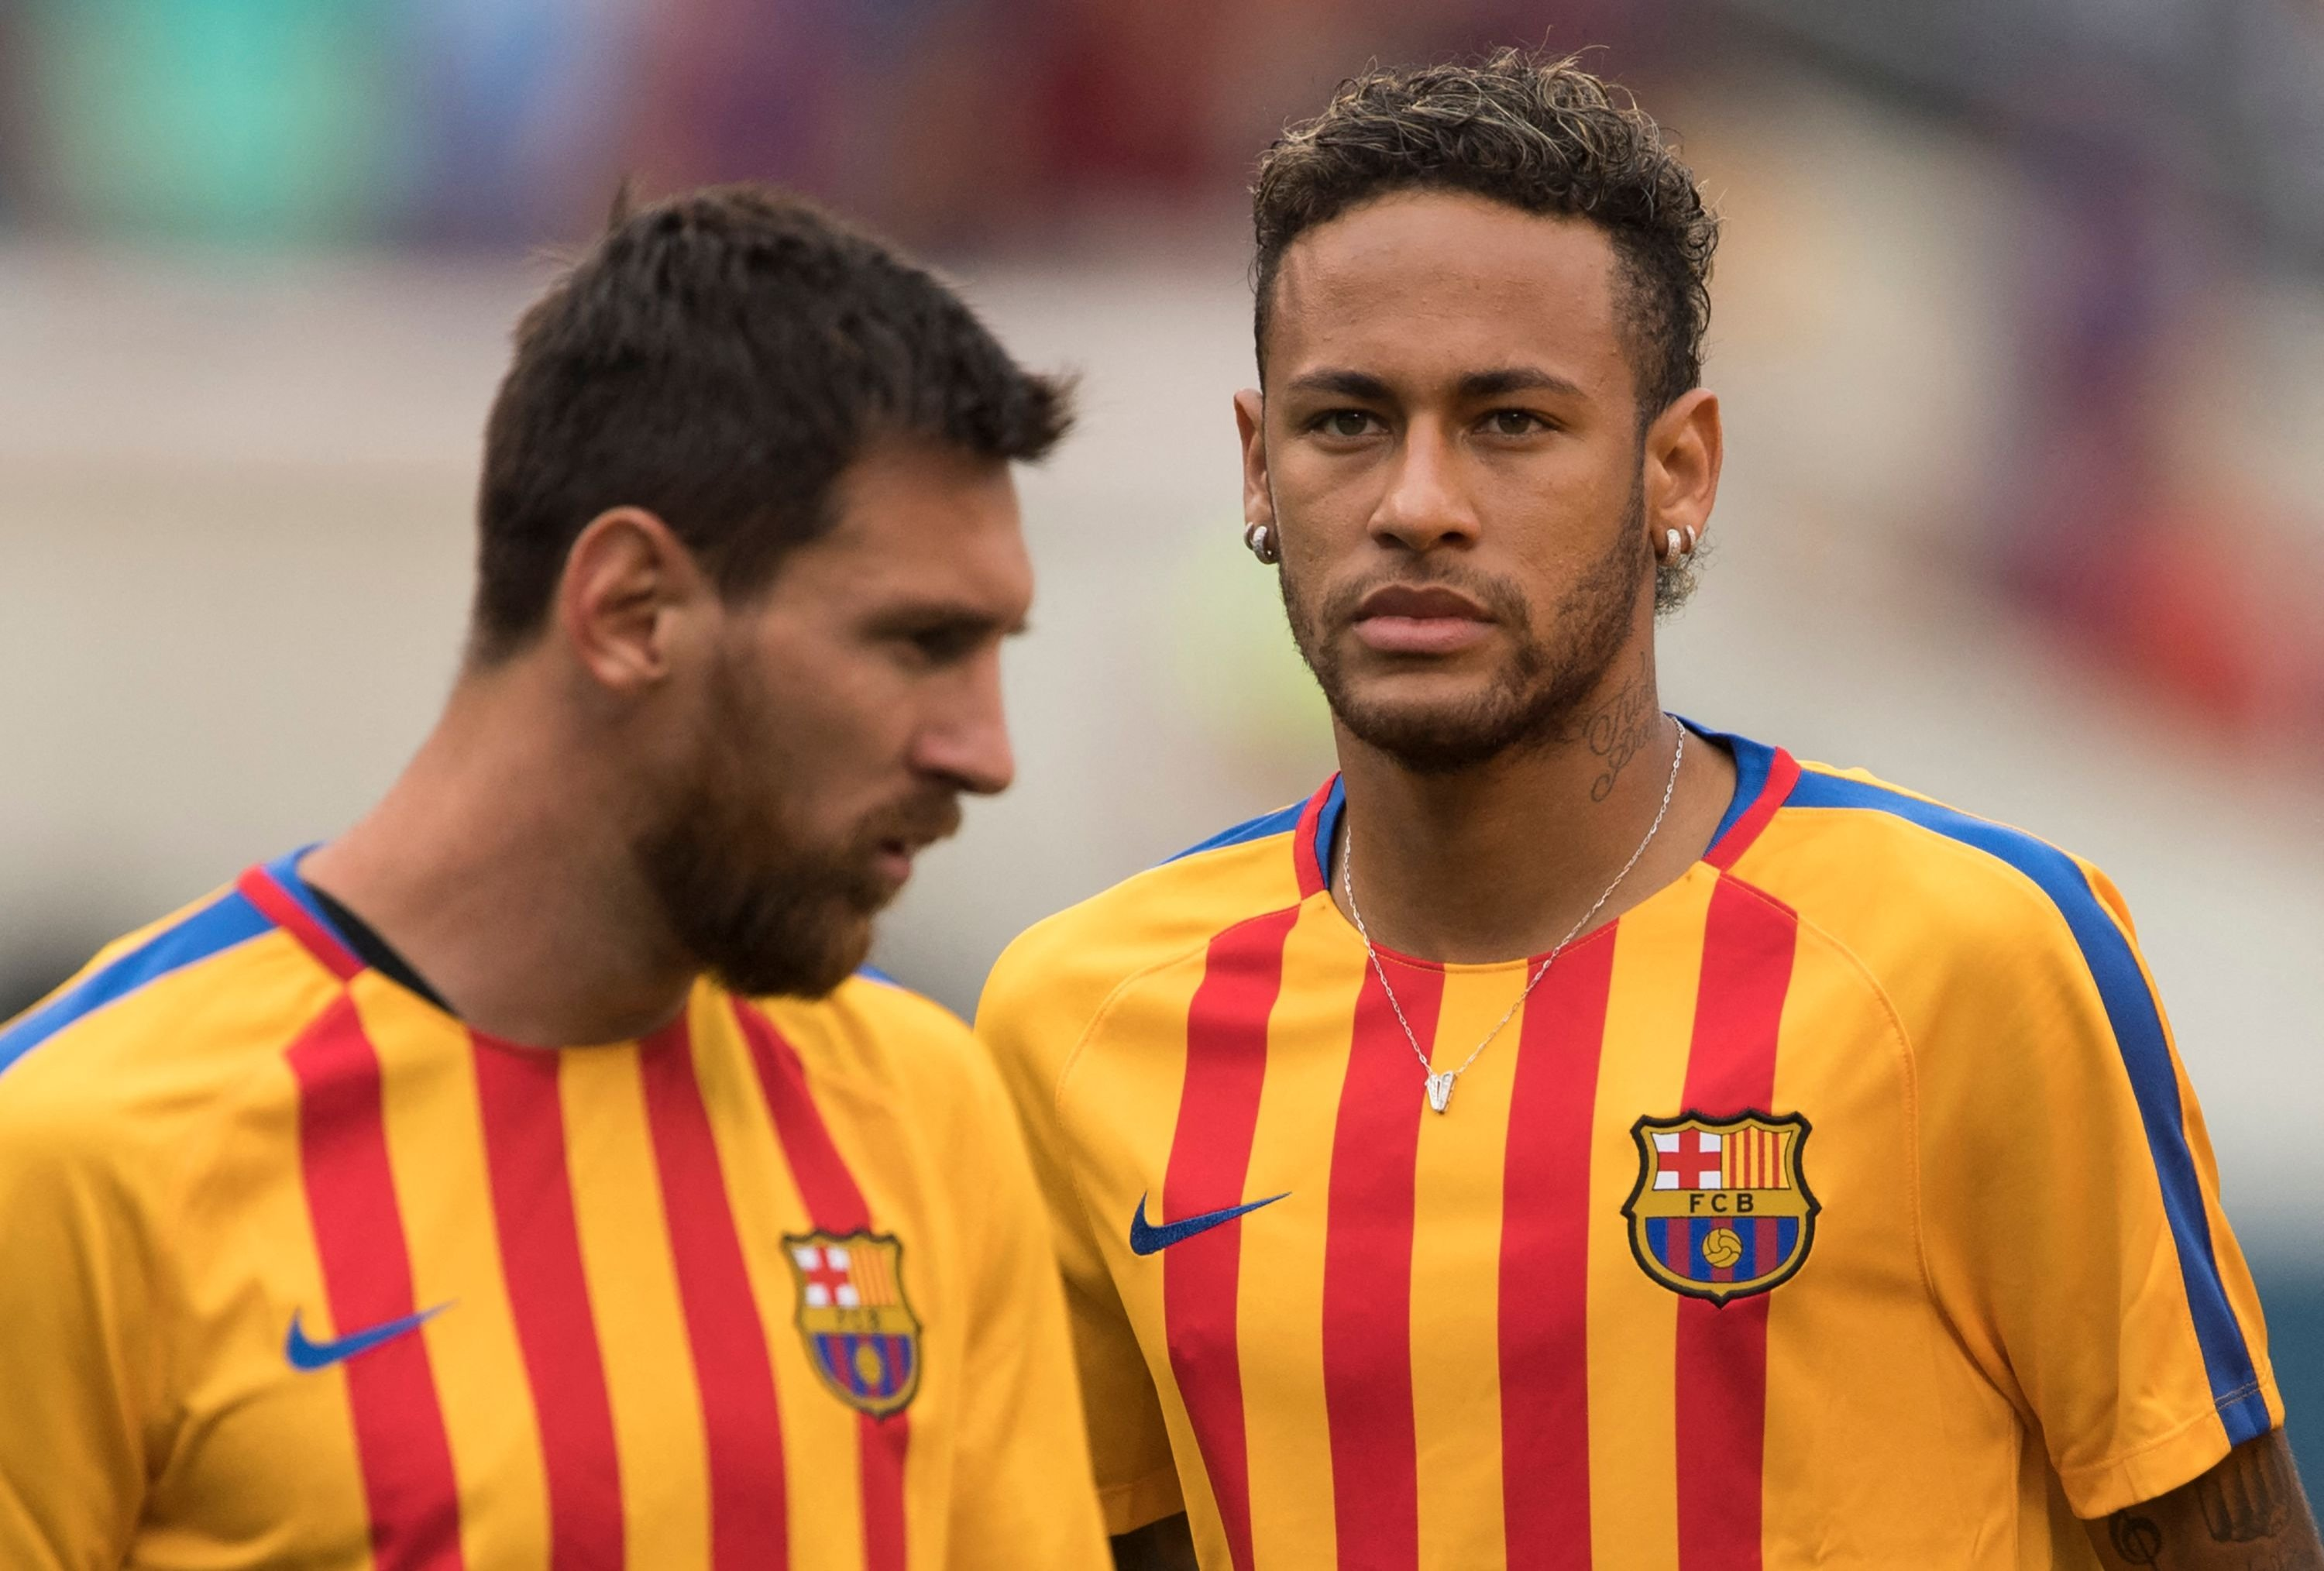 This file photograph shows then-Barcelona player Neymar (R) and Lionel Messi (L) warming up before the International Champions Cup (ICC) match against Juventus at the Met Life Stadium in East Rutherford, New Jersey, U.S., July 22, 2017.